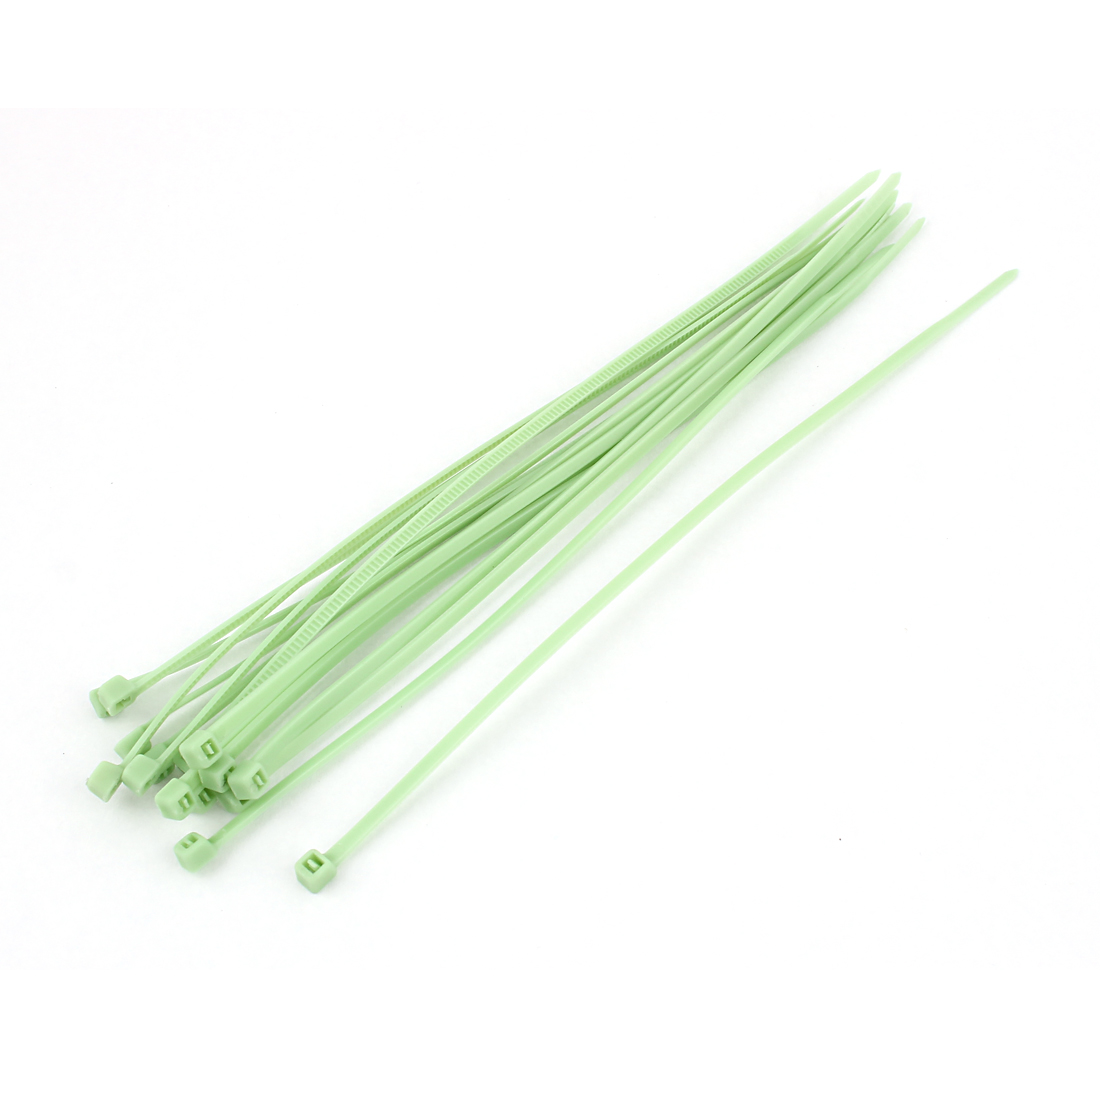 """15pcs 8"""" Nylon Self-Locking Network Cable Cord Wire Zip Ties Strap Green"""